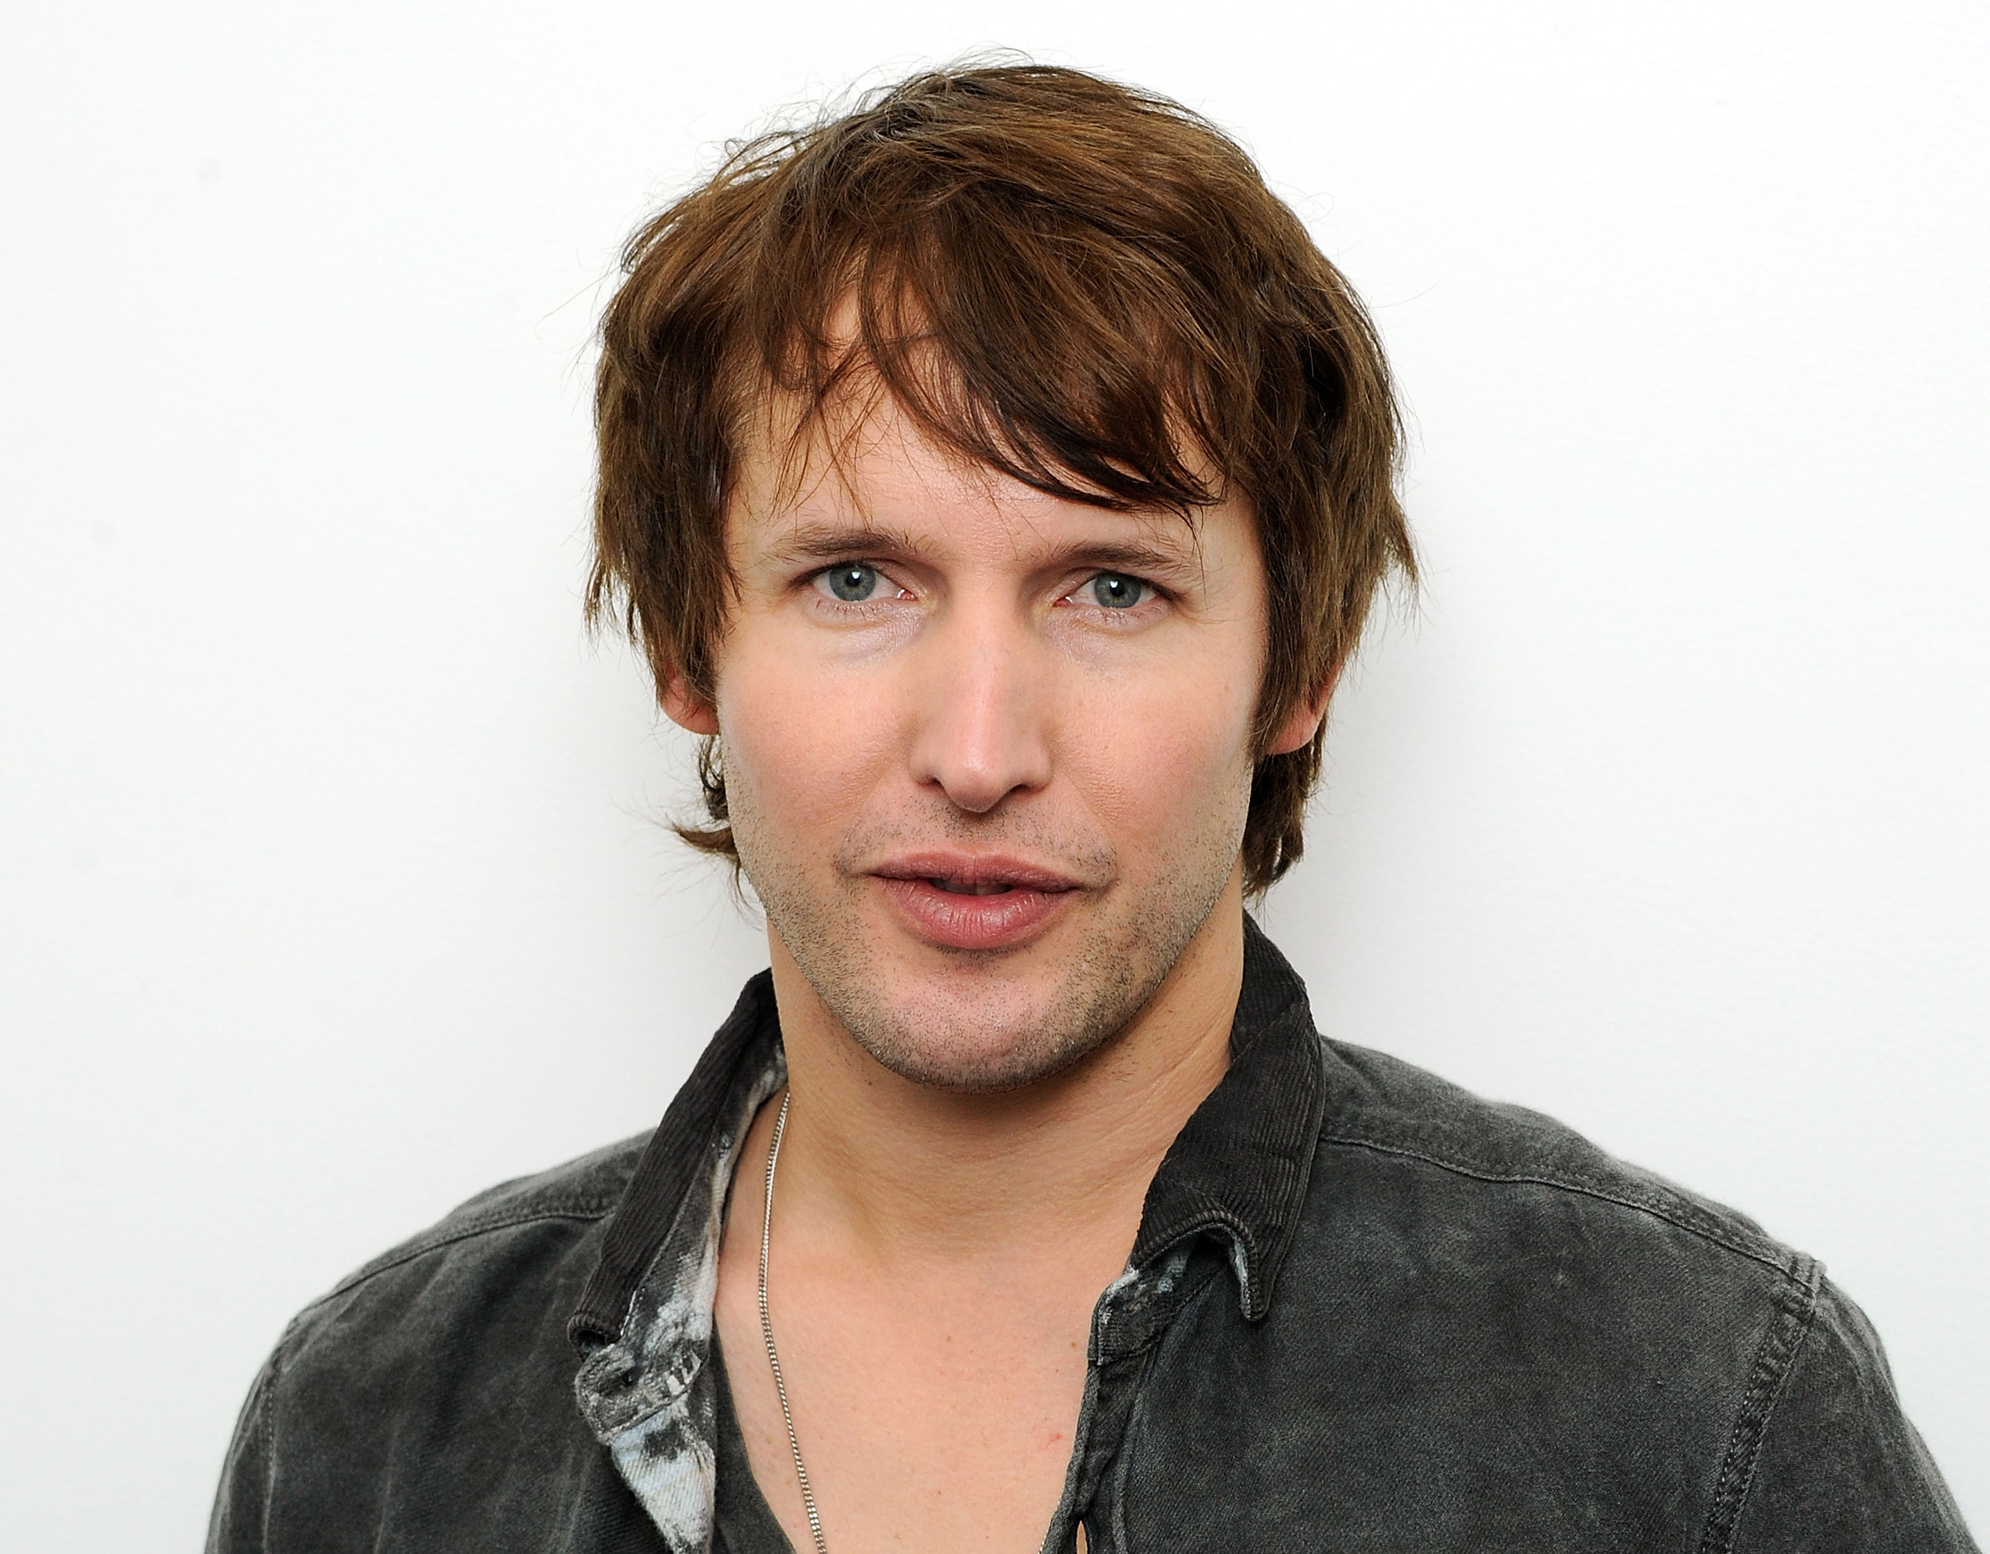 JetBlue's Live From T5 Concert Series Presents James Blunt